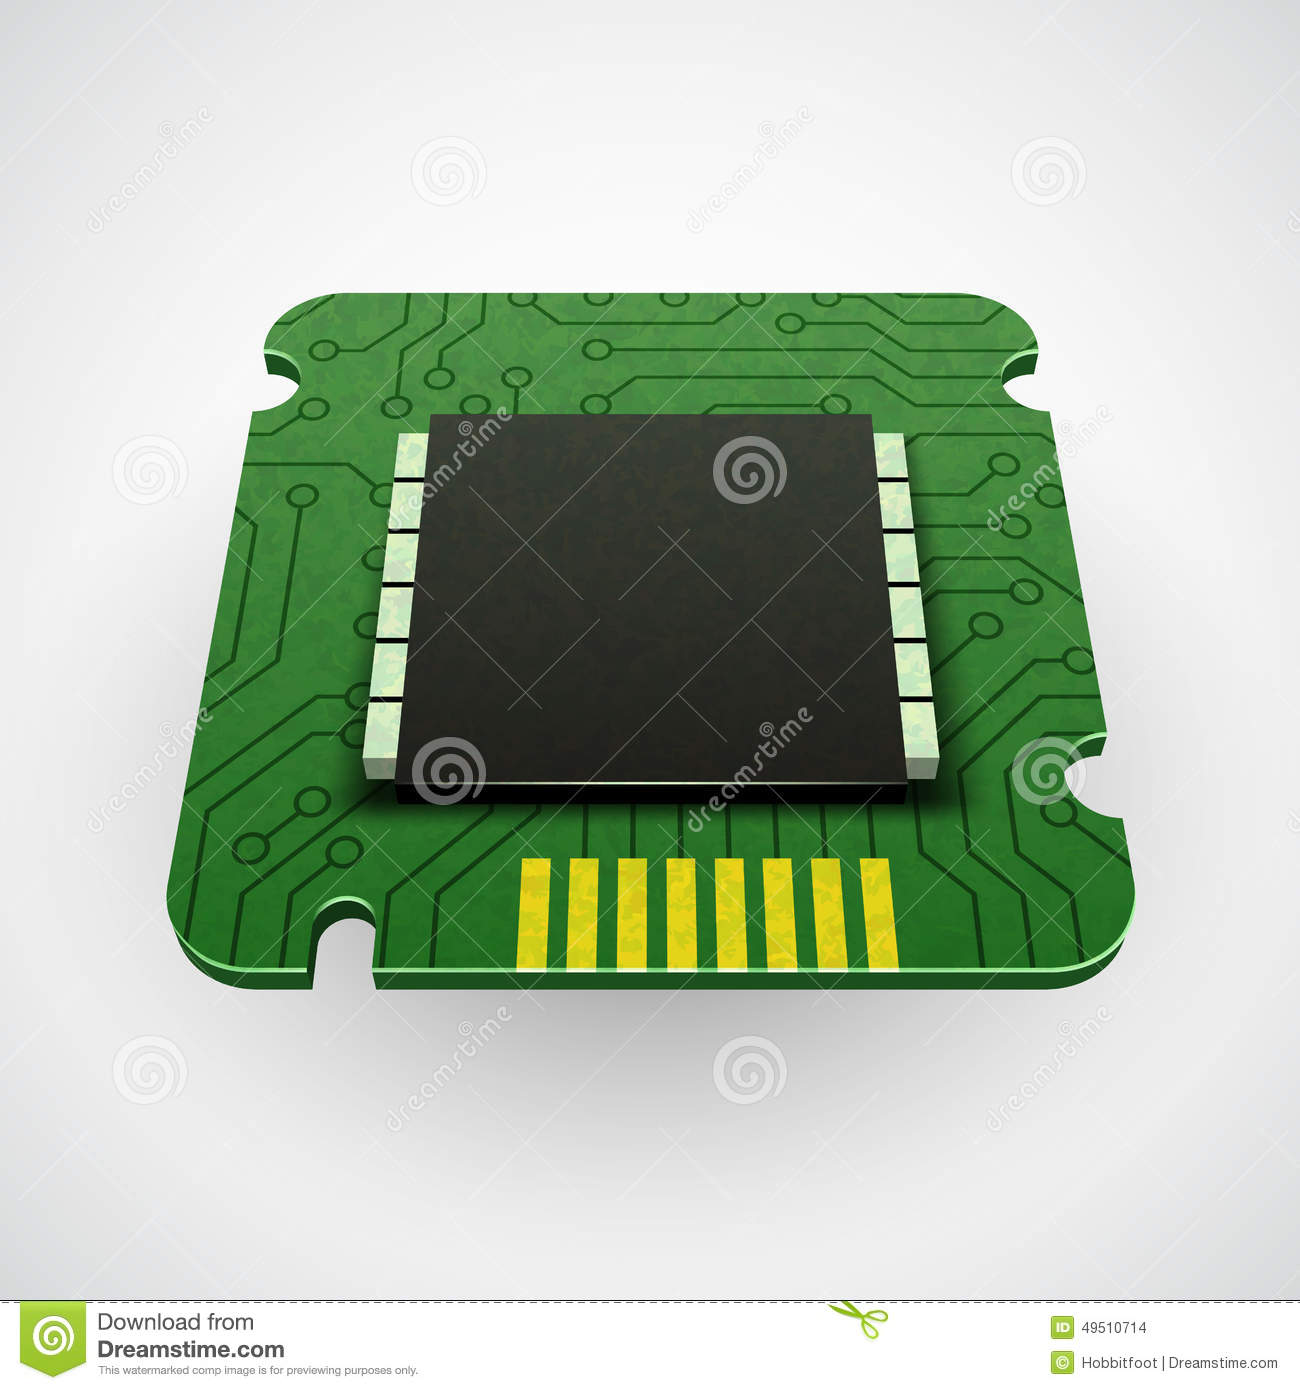 Vector computer chip or microchip.